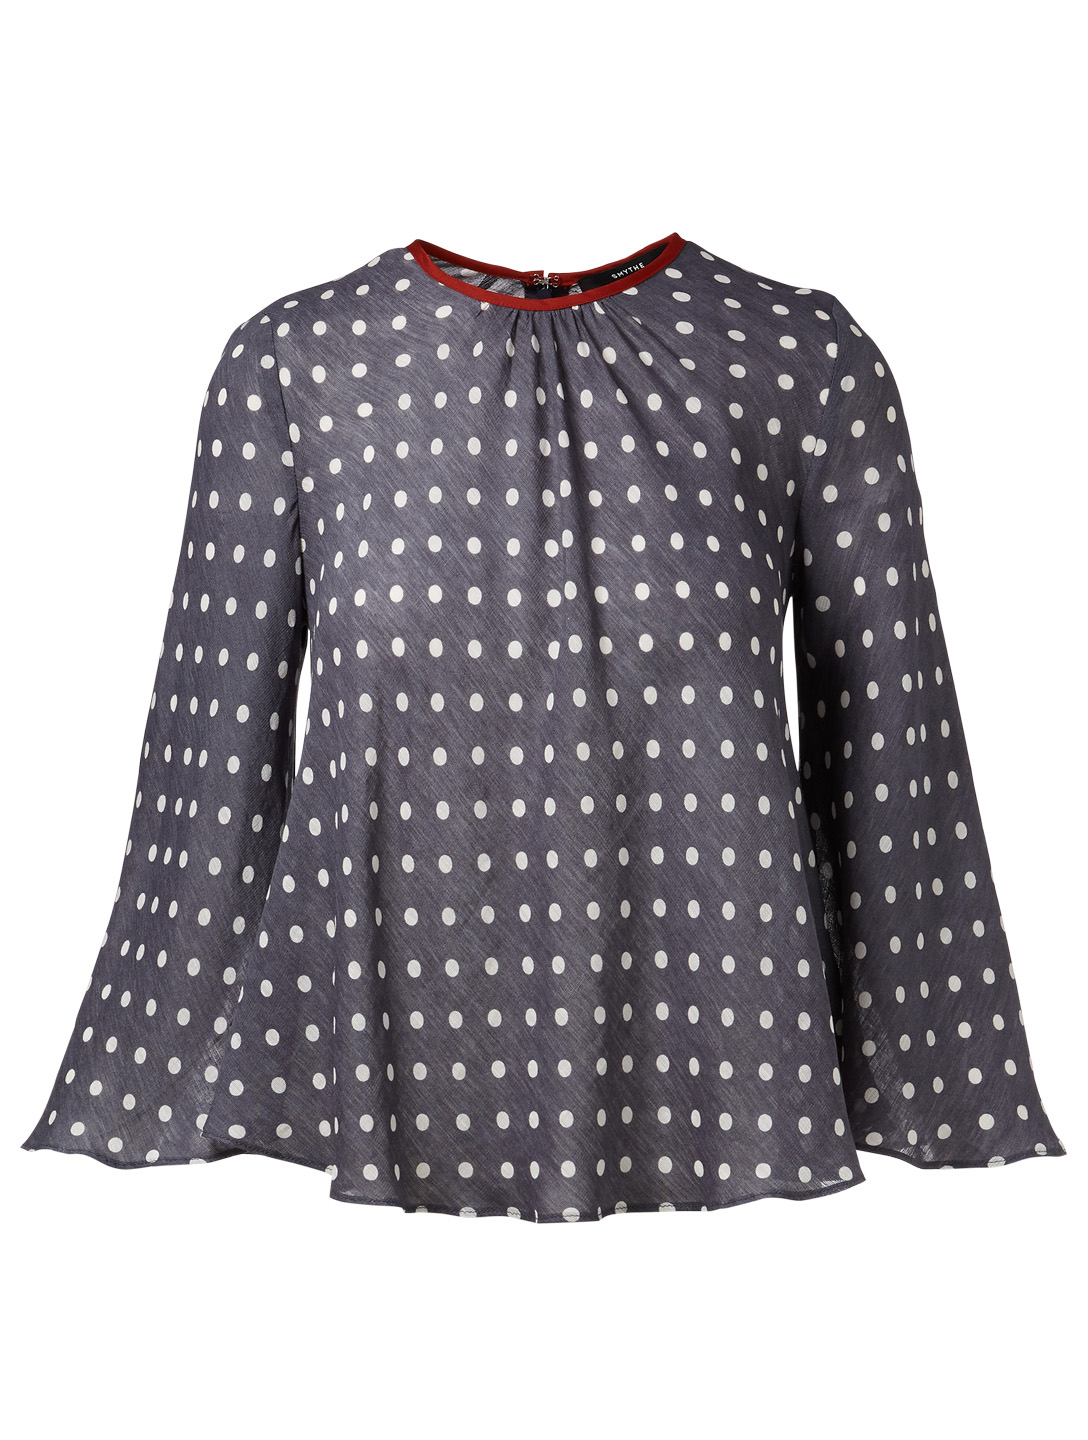 SMYTHE Bardot Blouse In Polka Dot Print Women's Blue